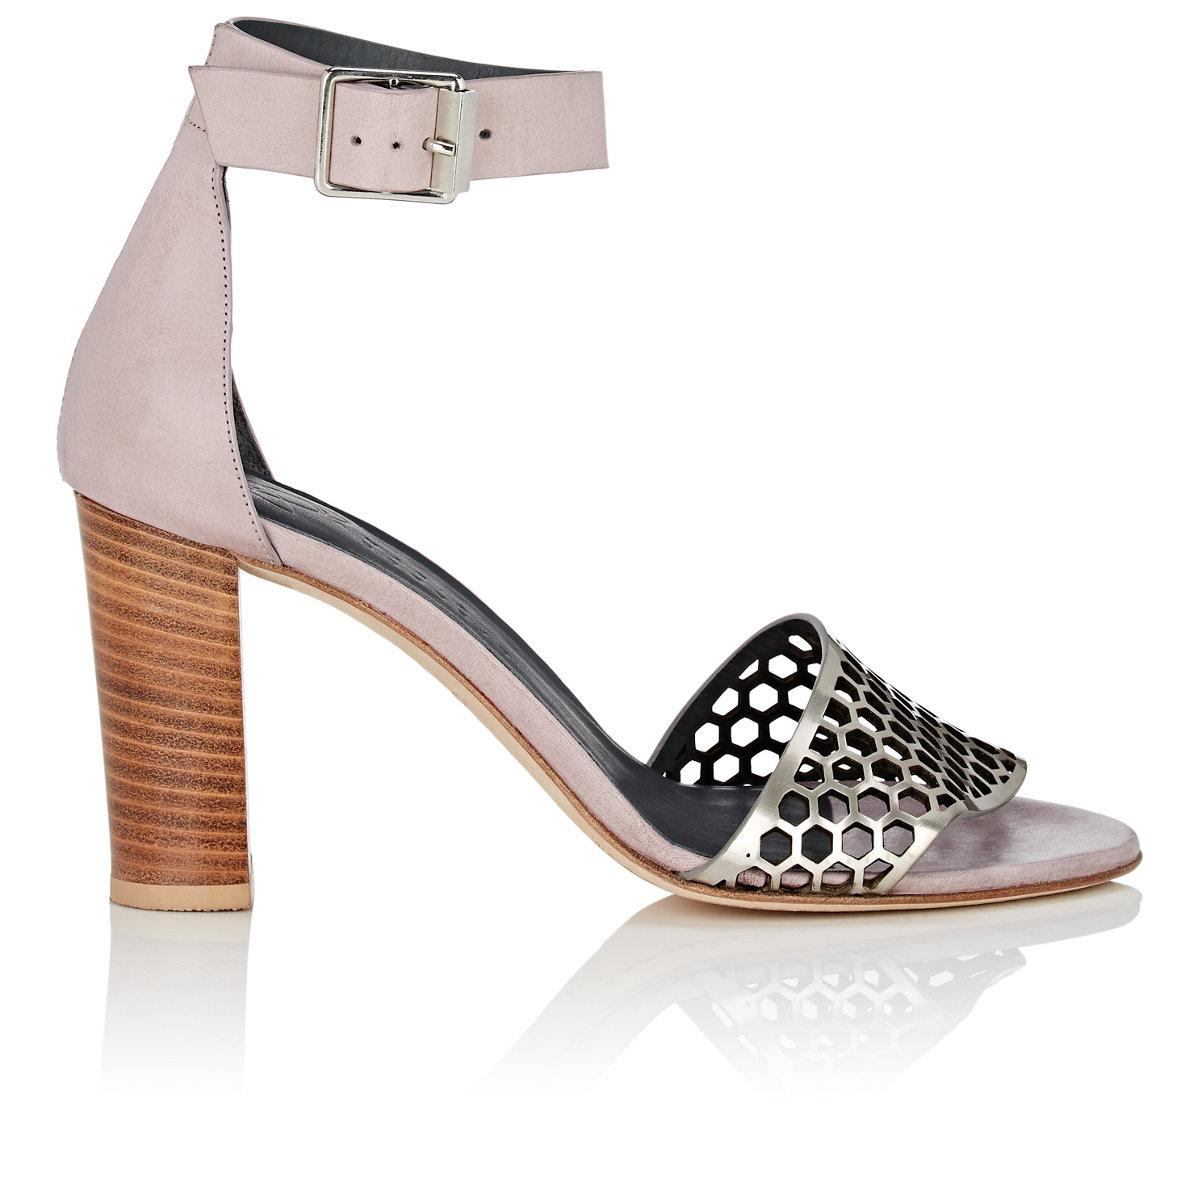 Cheap Affordable Clearance Marketable Womens Odin Perforated Leather Sandals Zero + Maria Cornejo Explore Discount Supply mSzLGXNeSu